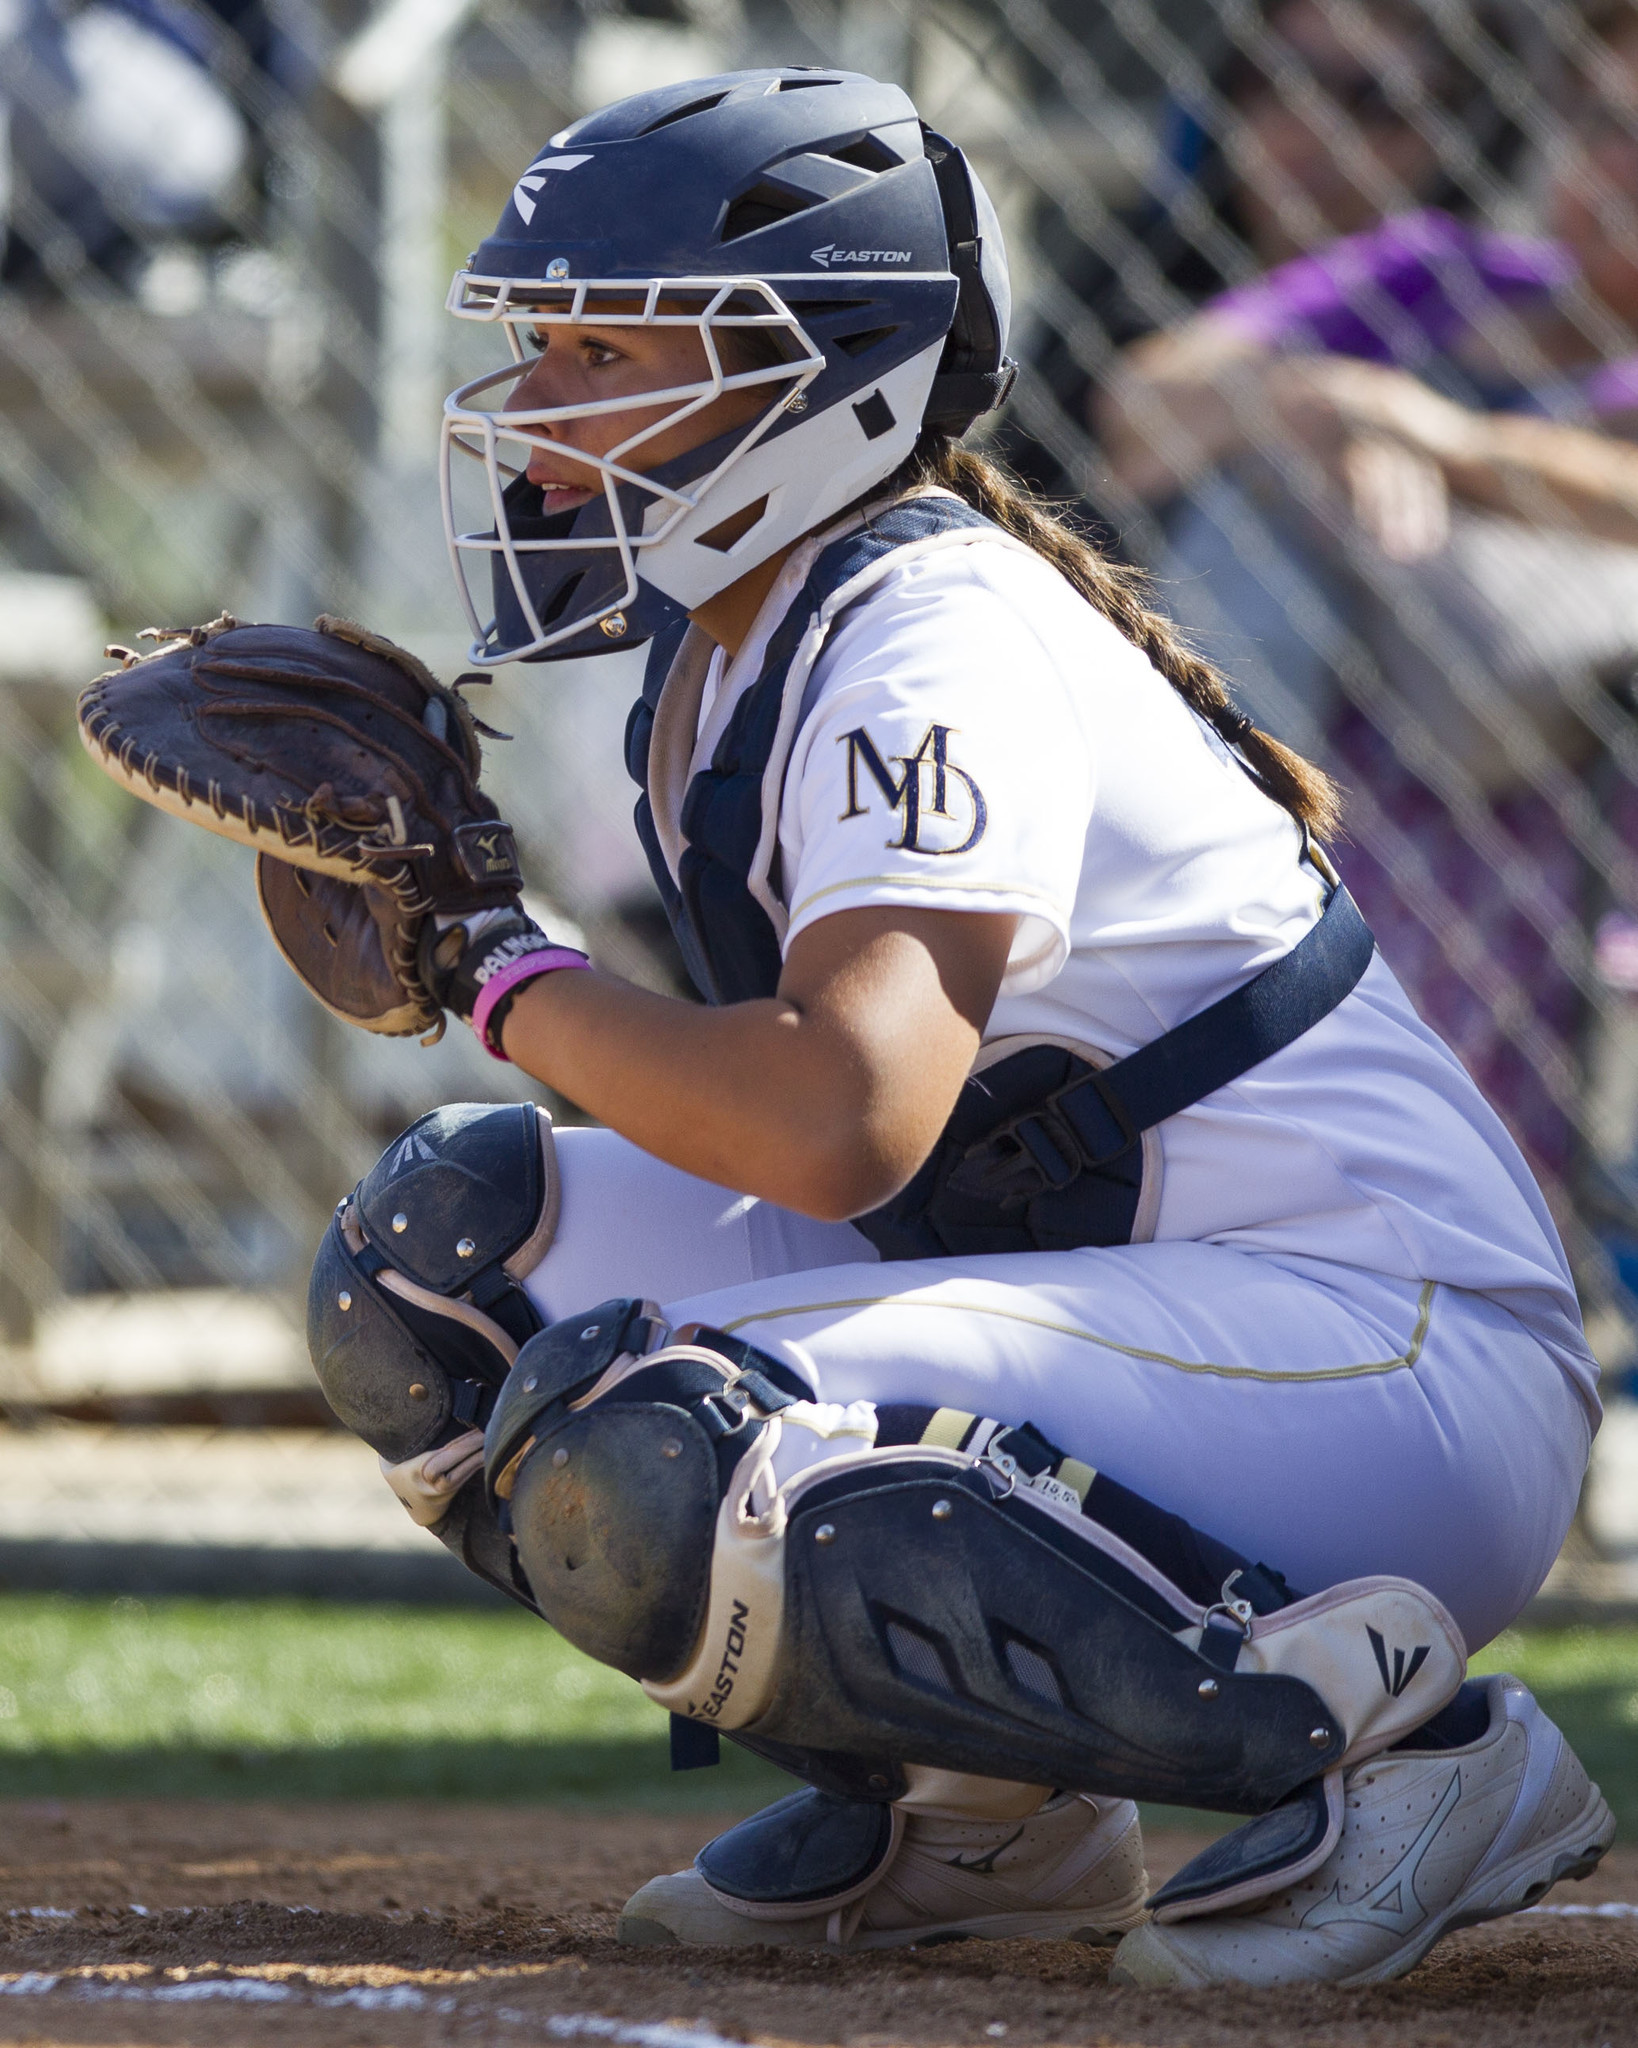 Alyssa Garcia leads the Crusaders with 16 hits in 24 at-bats.